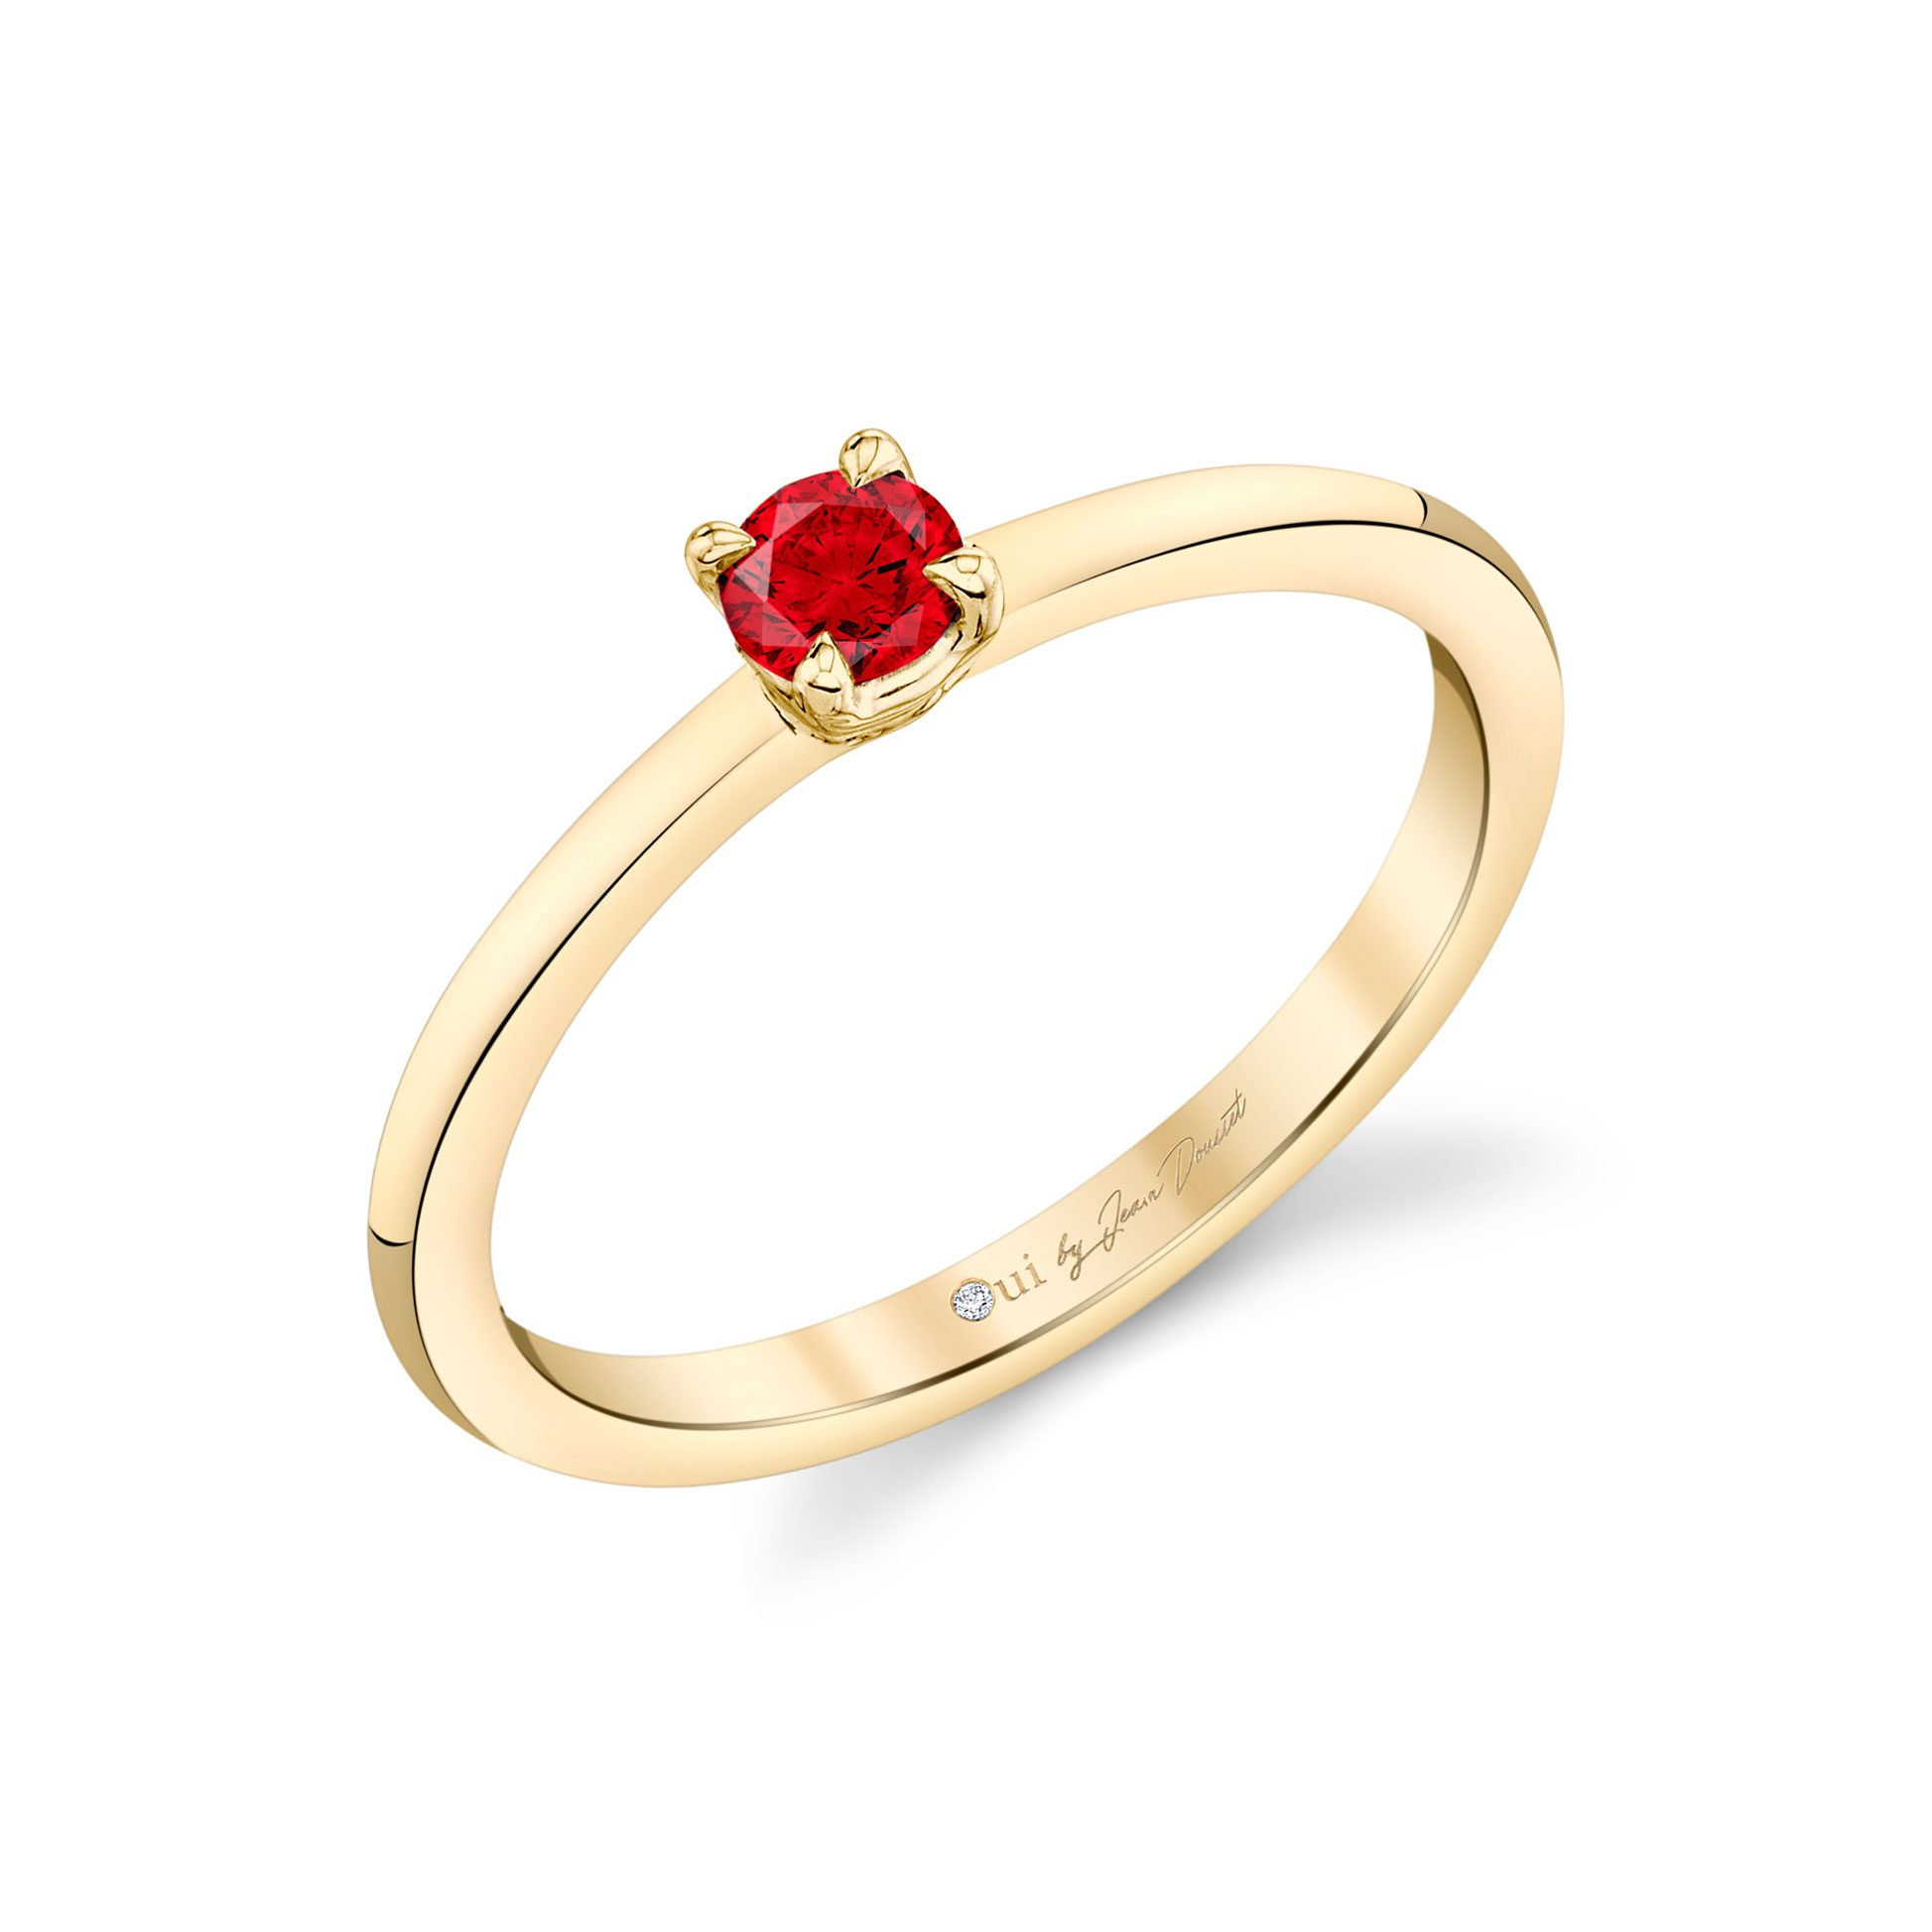 La Petite Round Brilliant Ruby Ring in 18k Yellow Gold Profile View by Oui by Jean Dousset